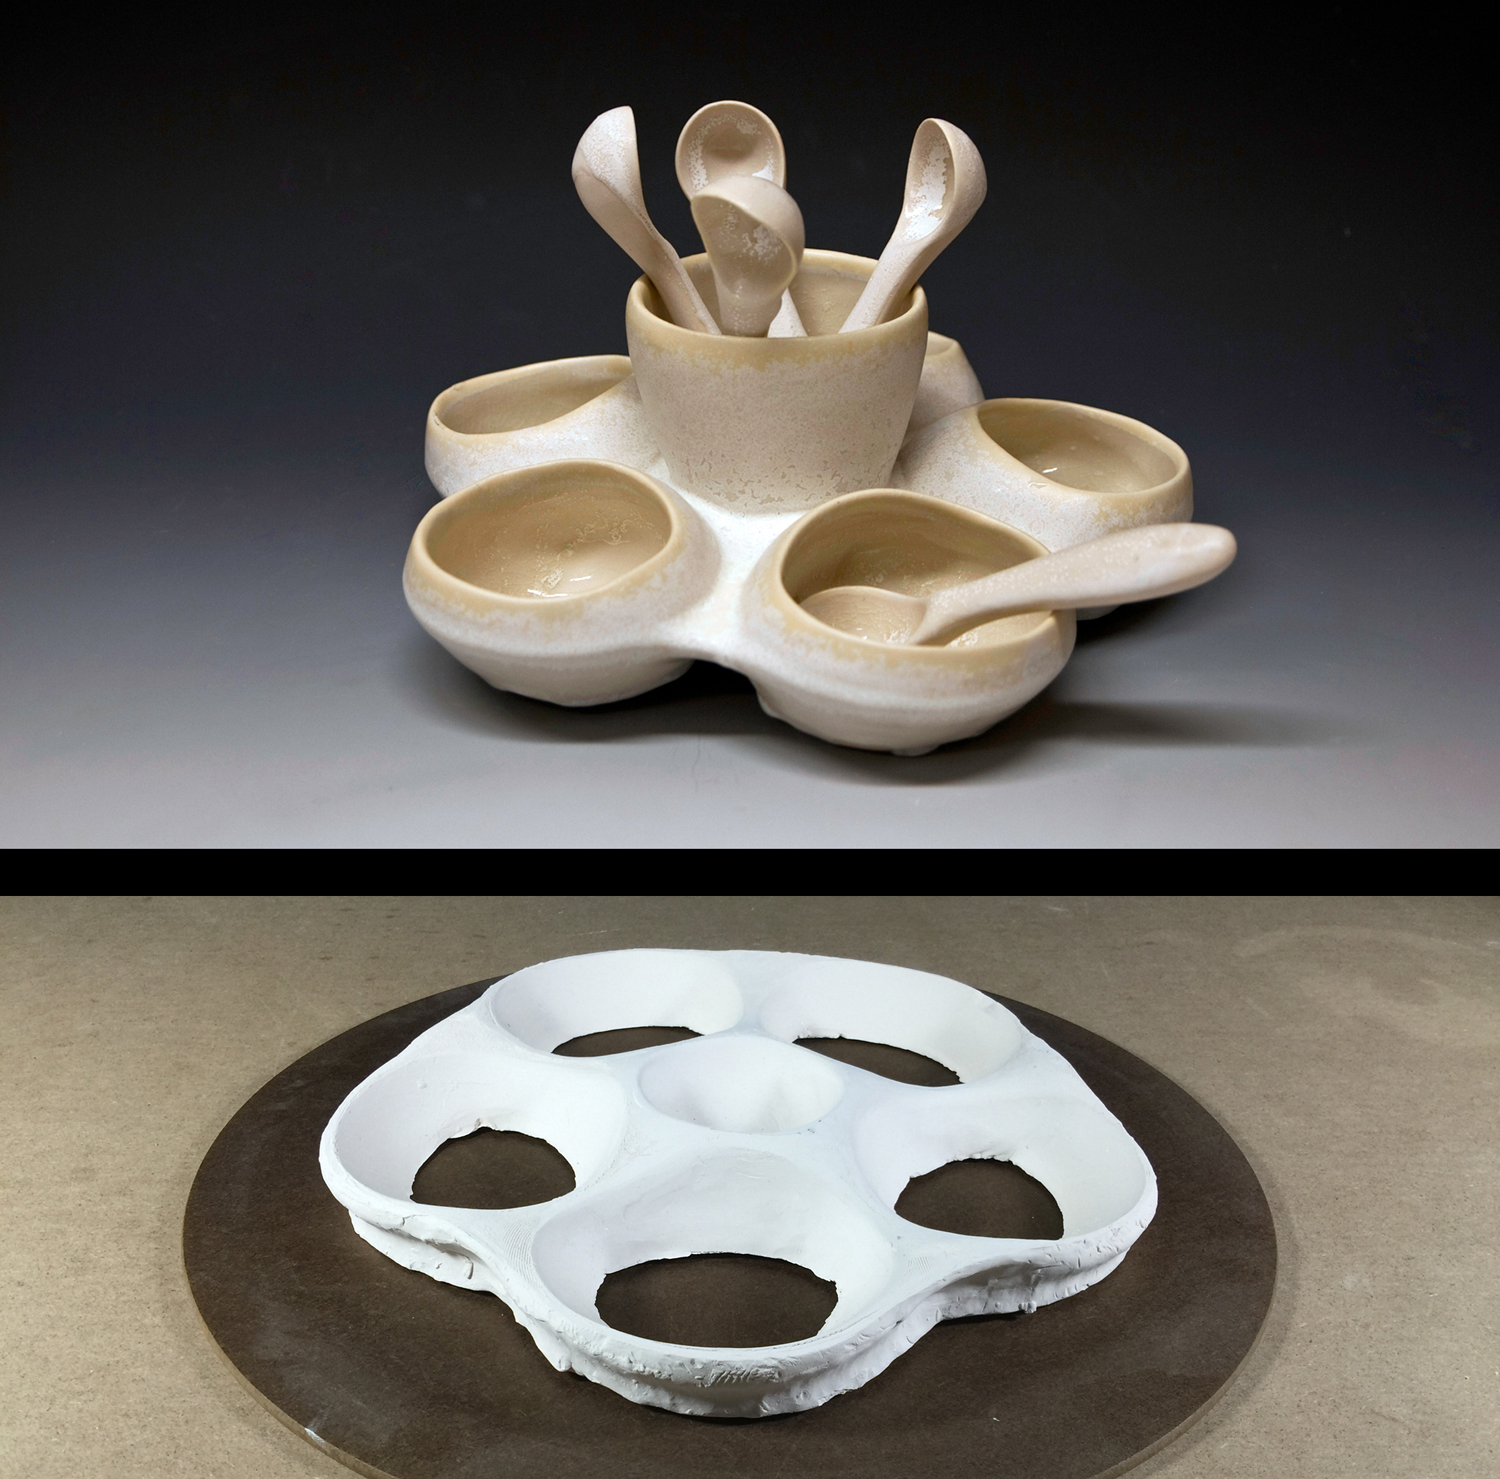 Bump mold used to create a more complex form.